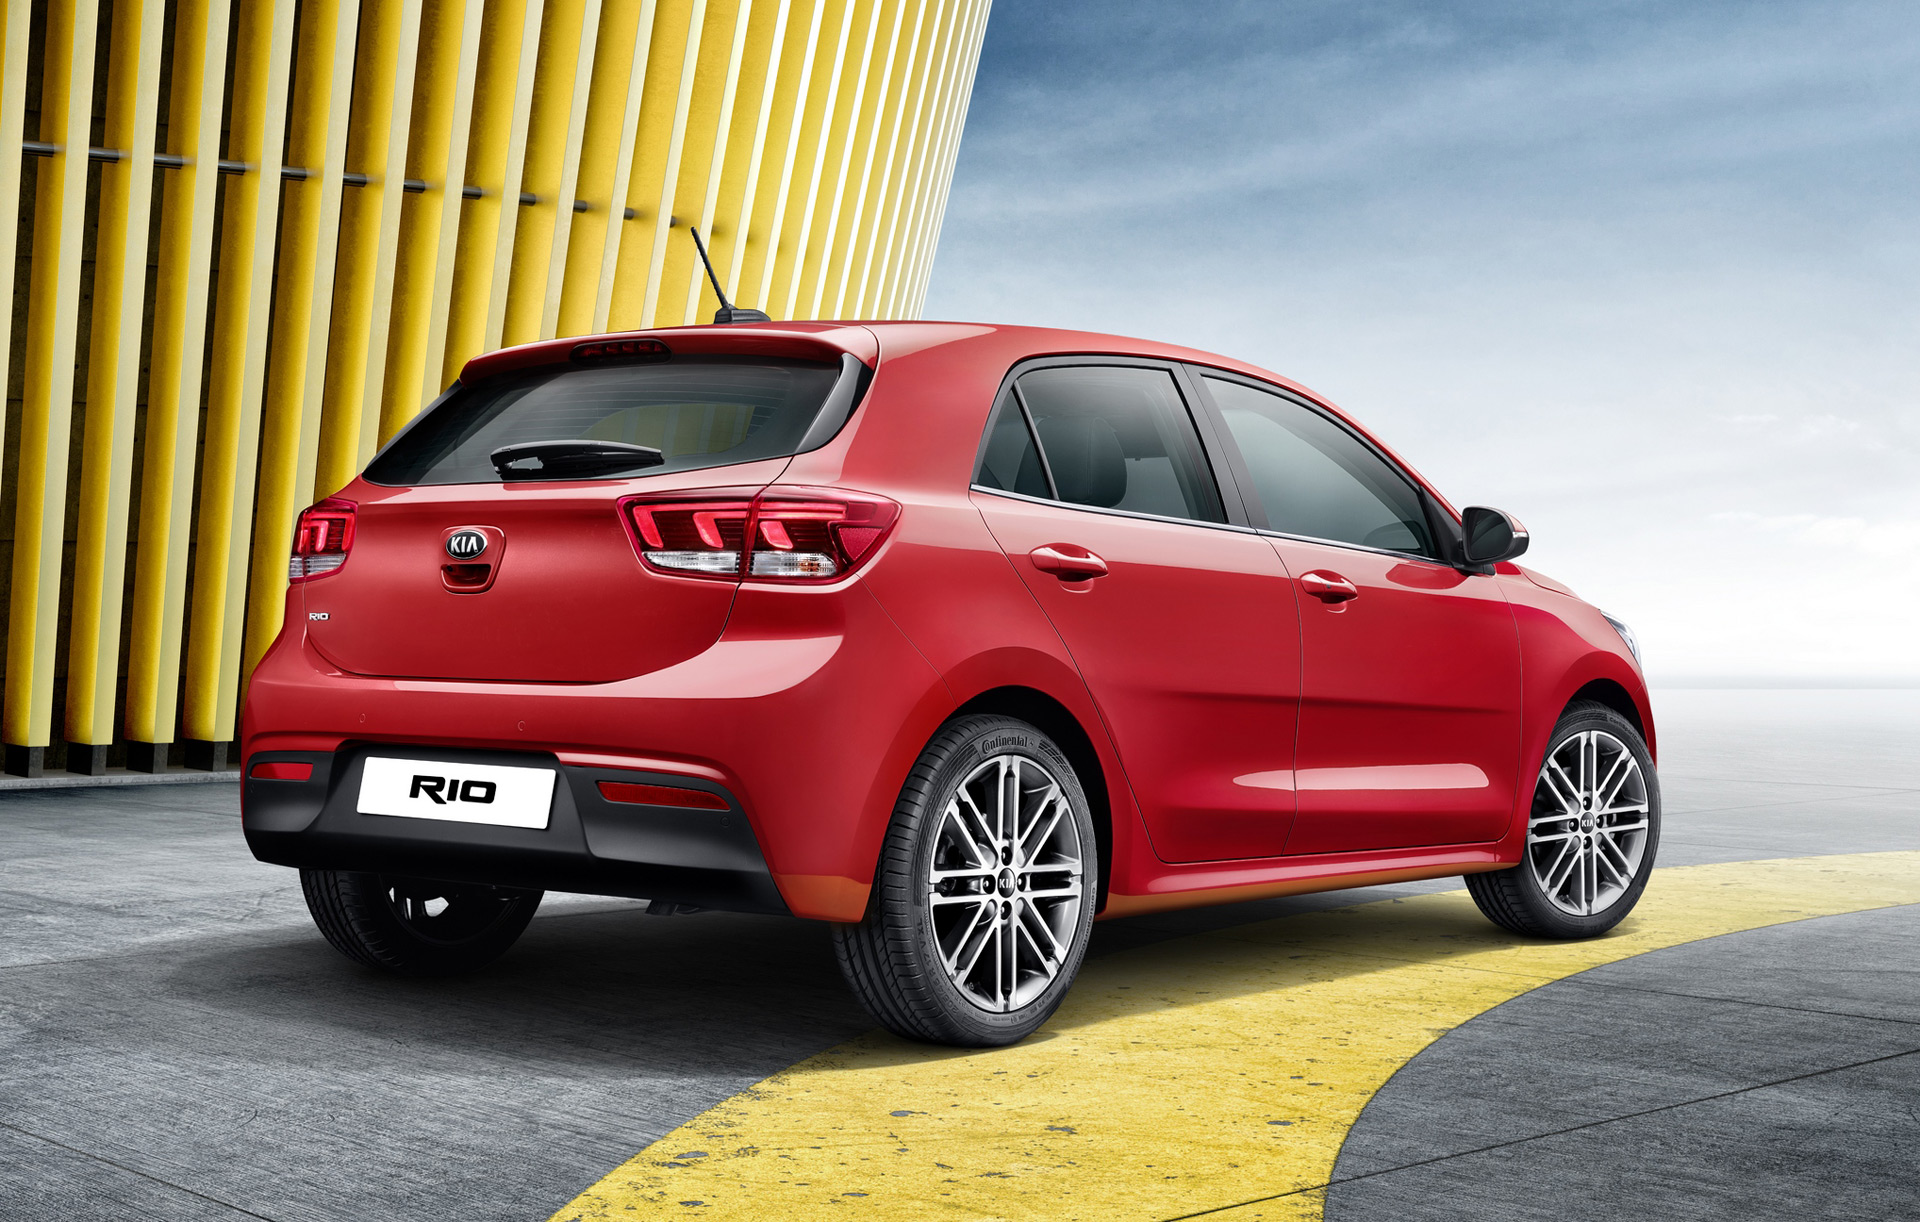 2017 Kia Rio Is All New, Now With Actual Style